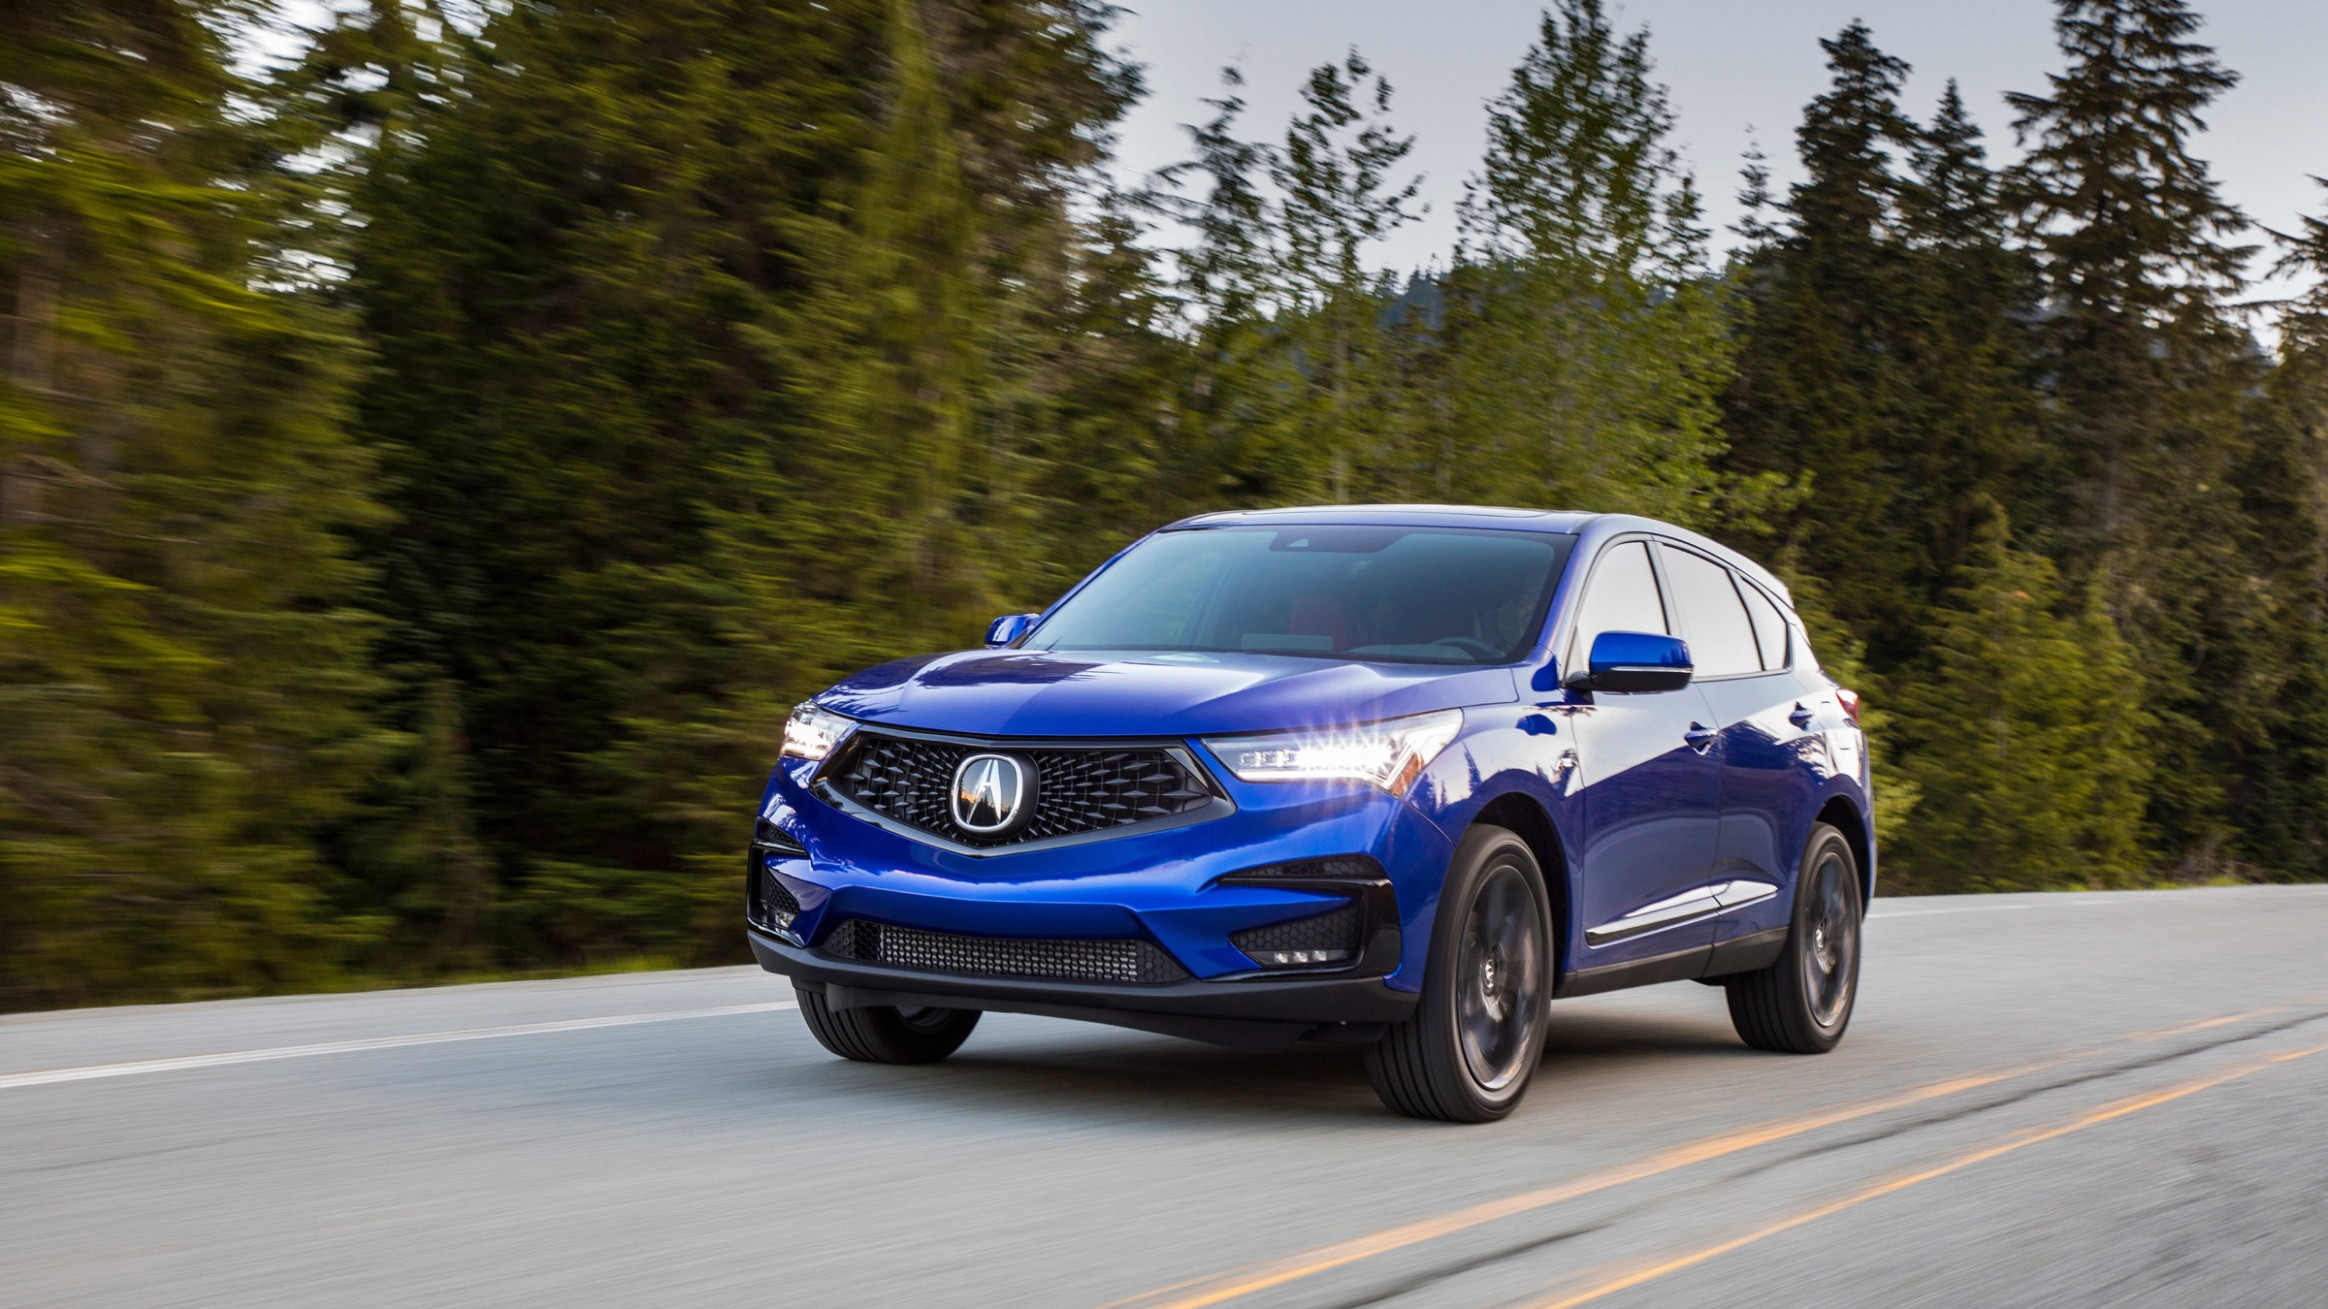 8 Acura RDX Review and Buying Guide | Specs, features, photos ..